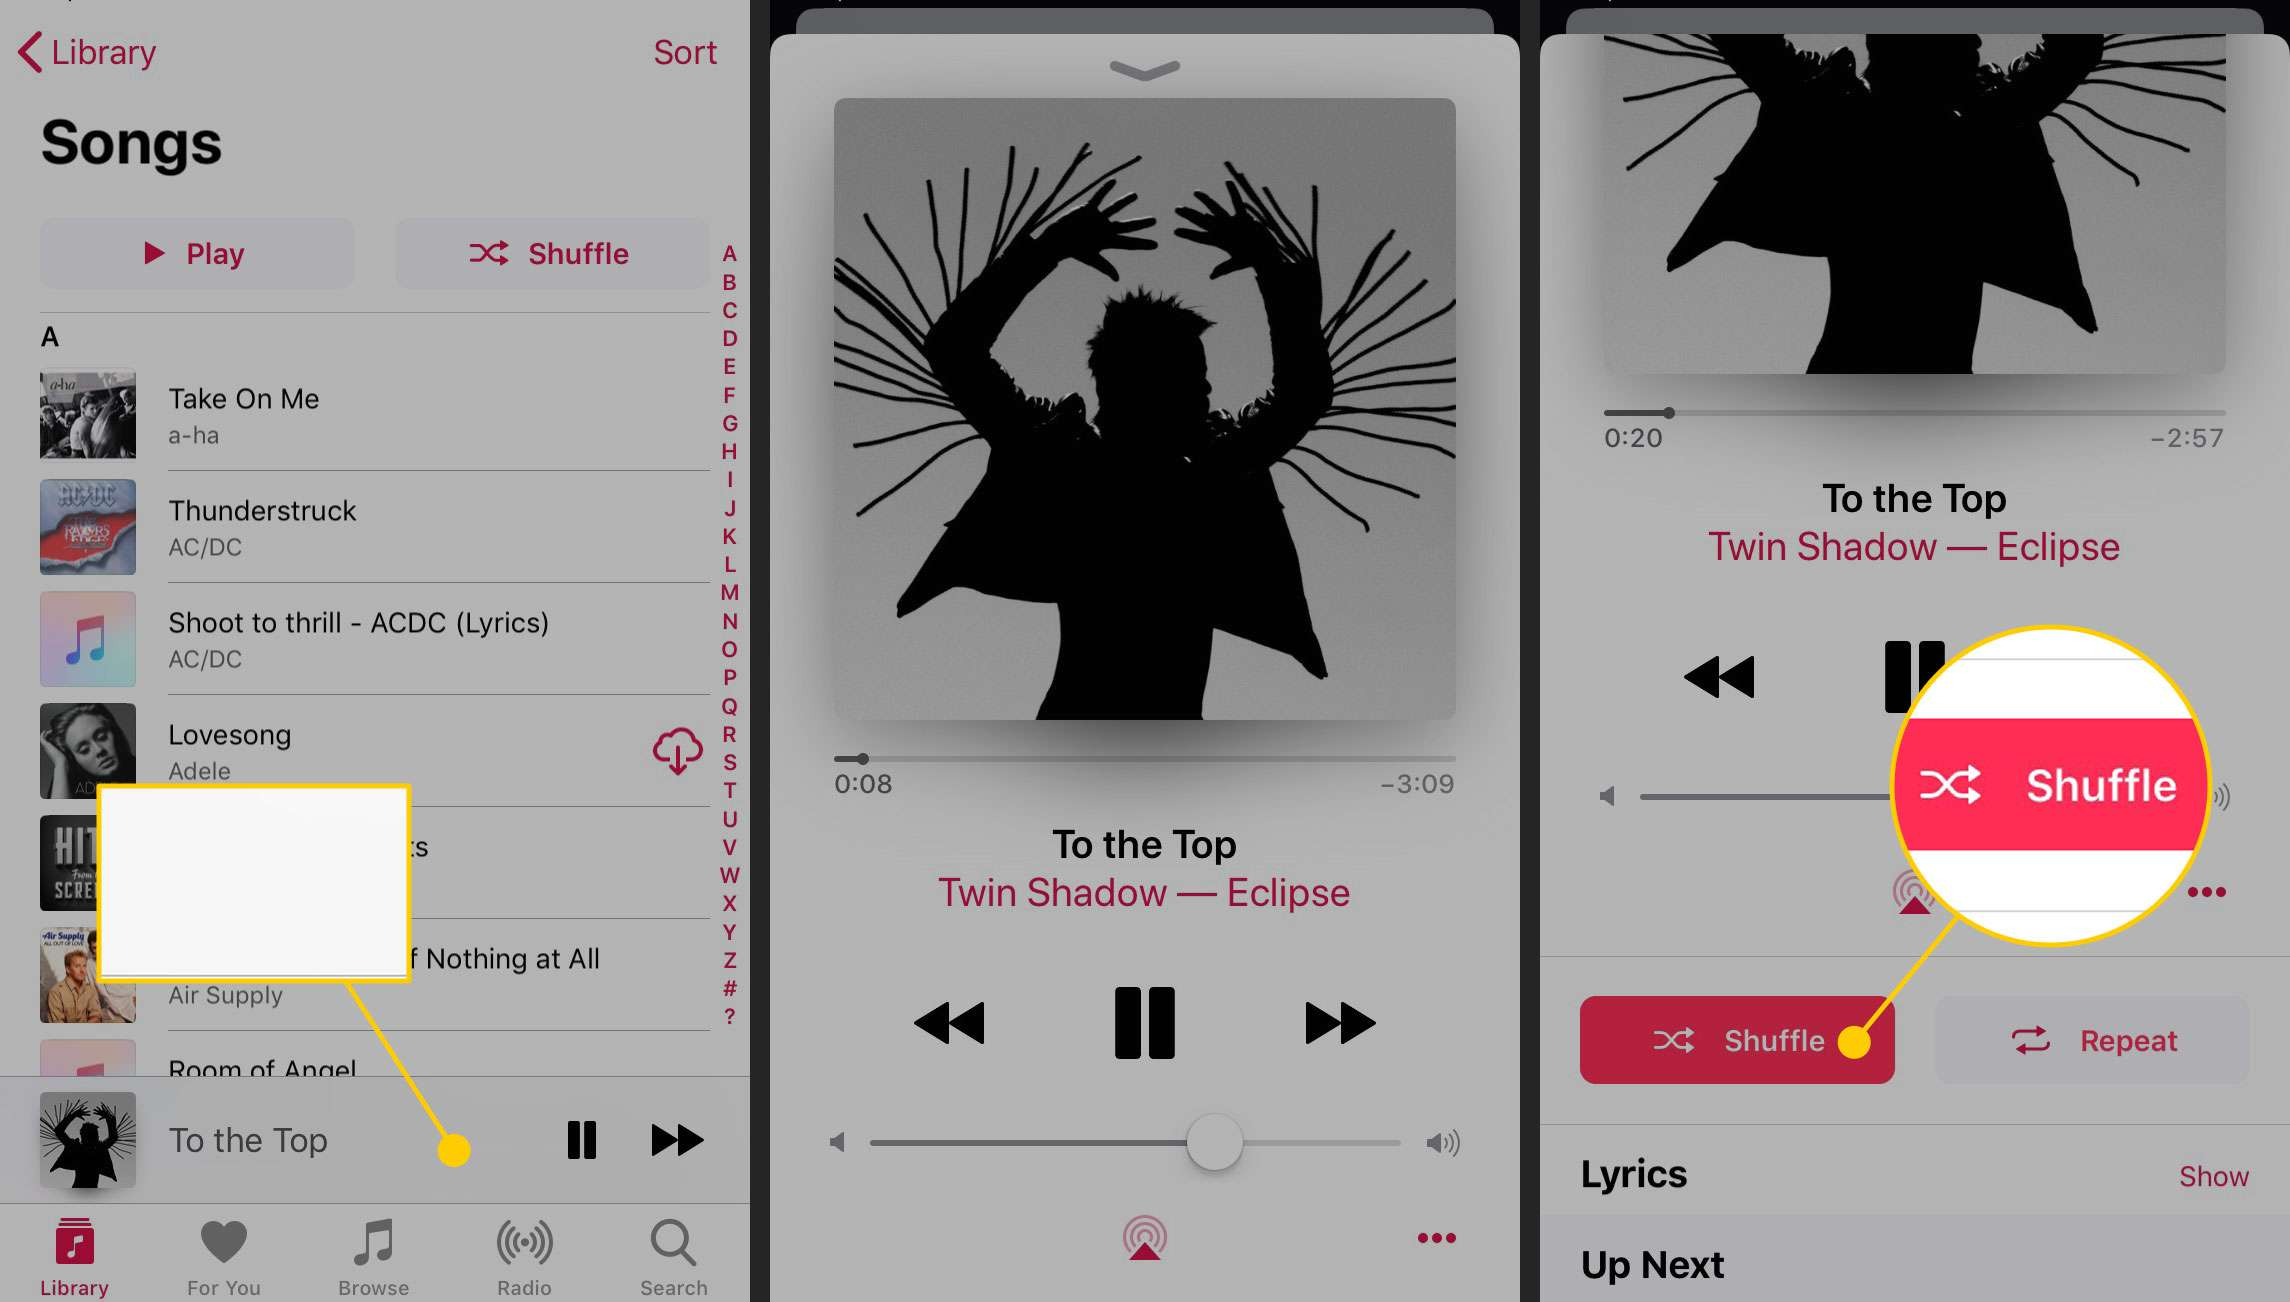 The shuffle option in Music on an iPhone